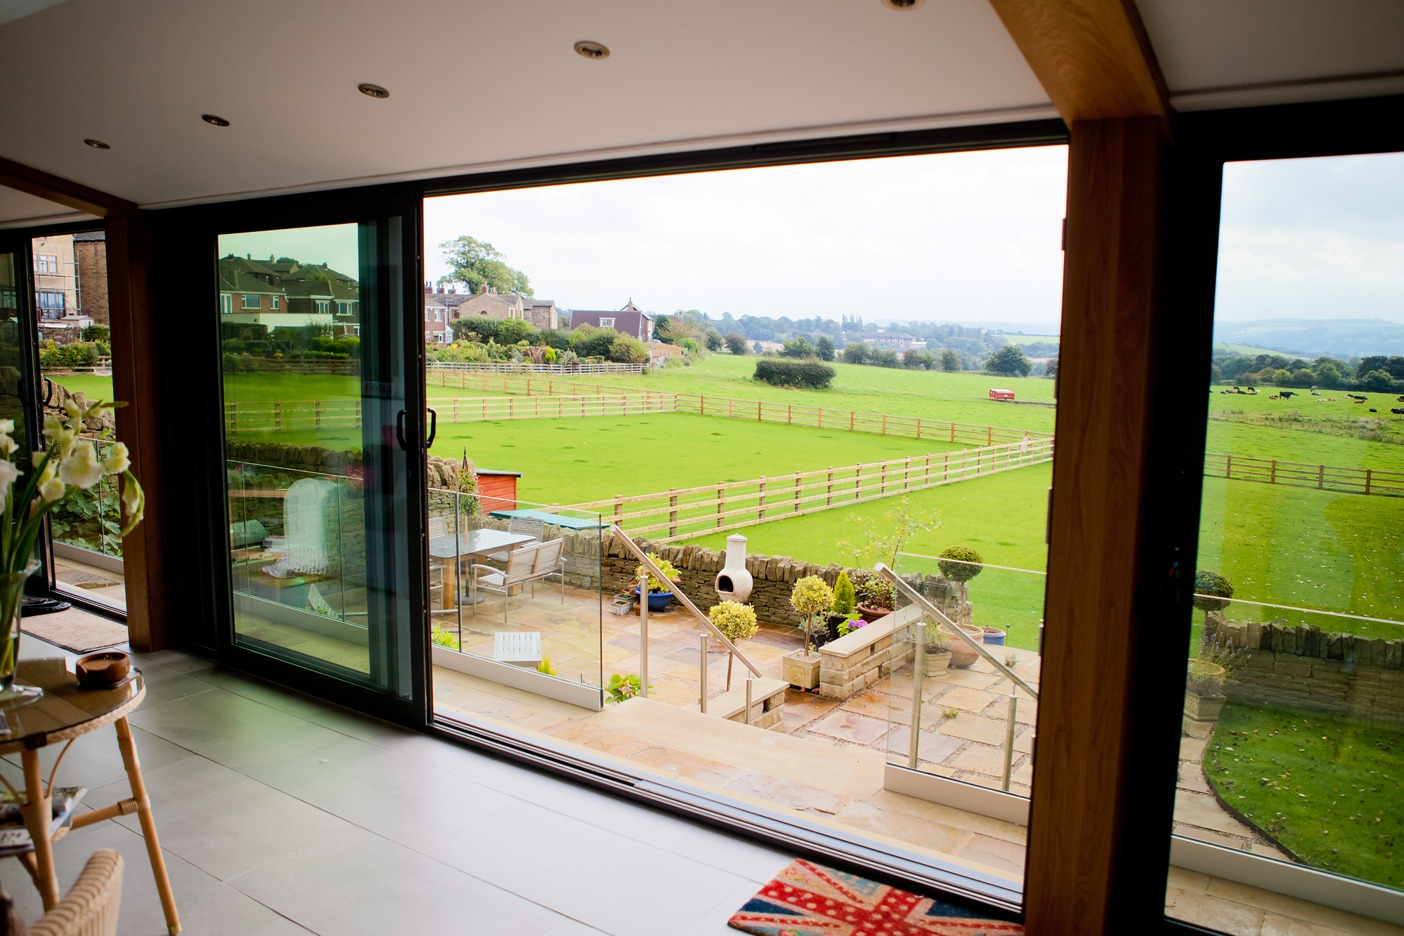 Sliding Doors Huddersfield & Aluminium Windows | Fixed | Casement | Sash | Bay | Angled ...